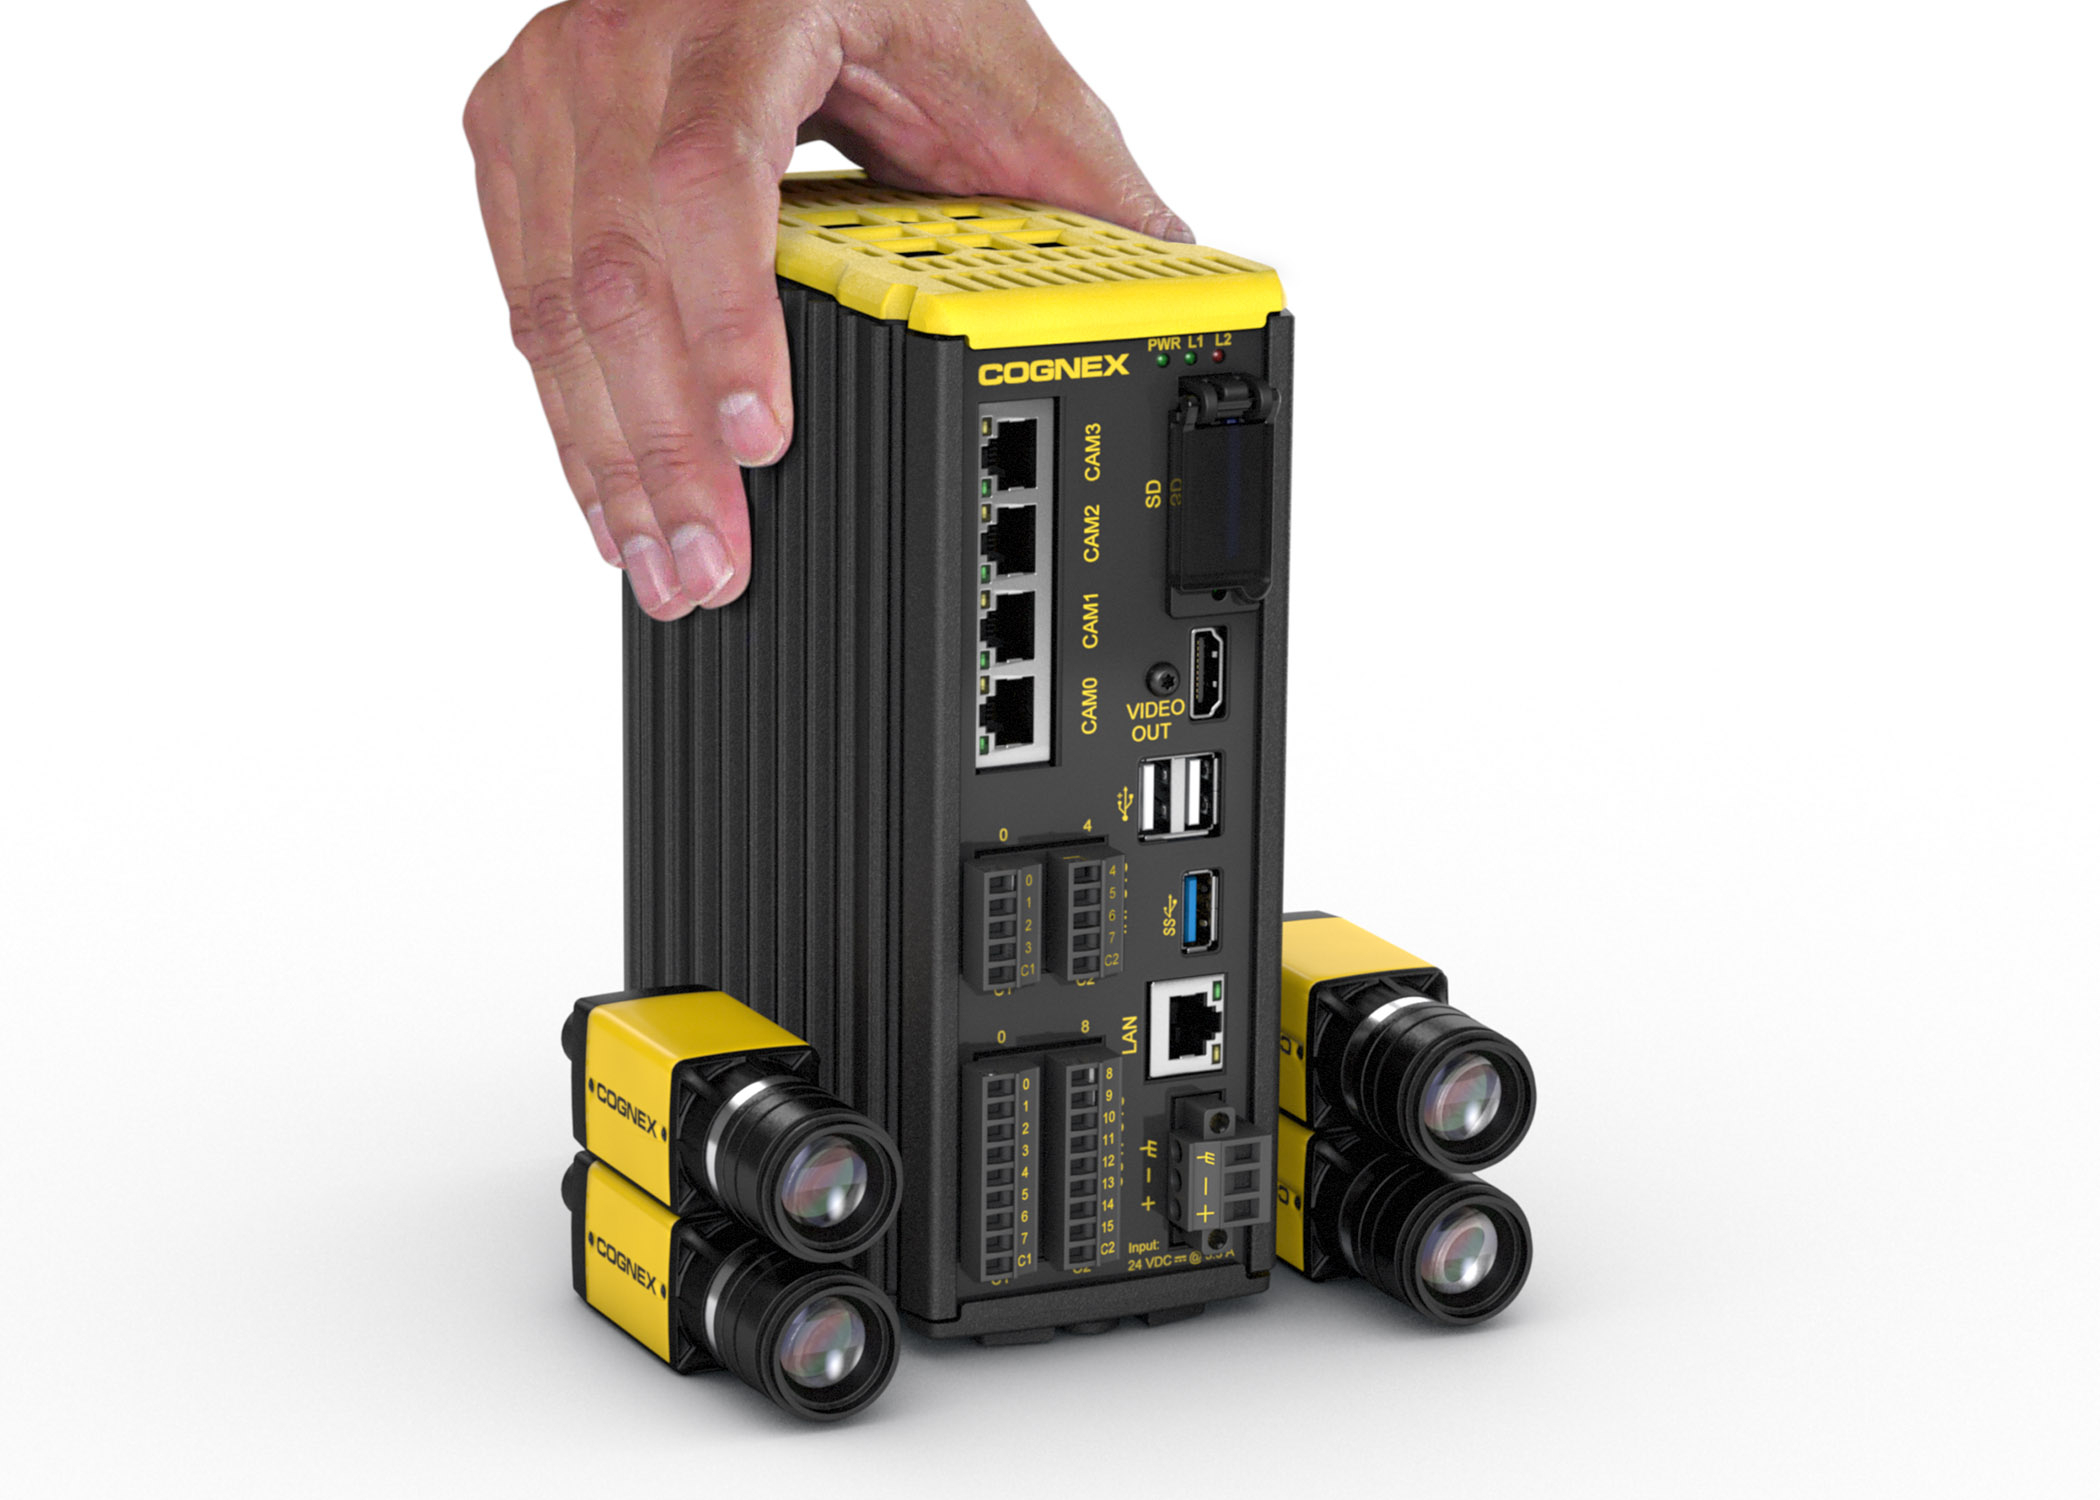 Cognex Spreadsheet In World's First Multi Smart Camera Vision System  Cognex